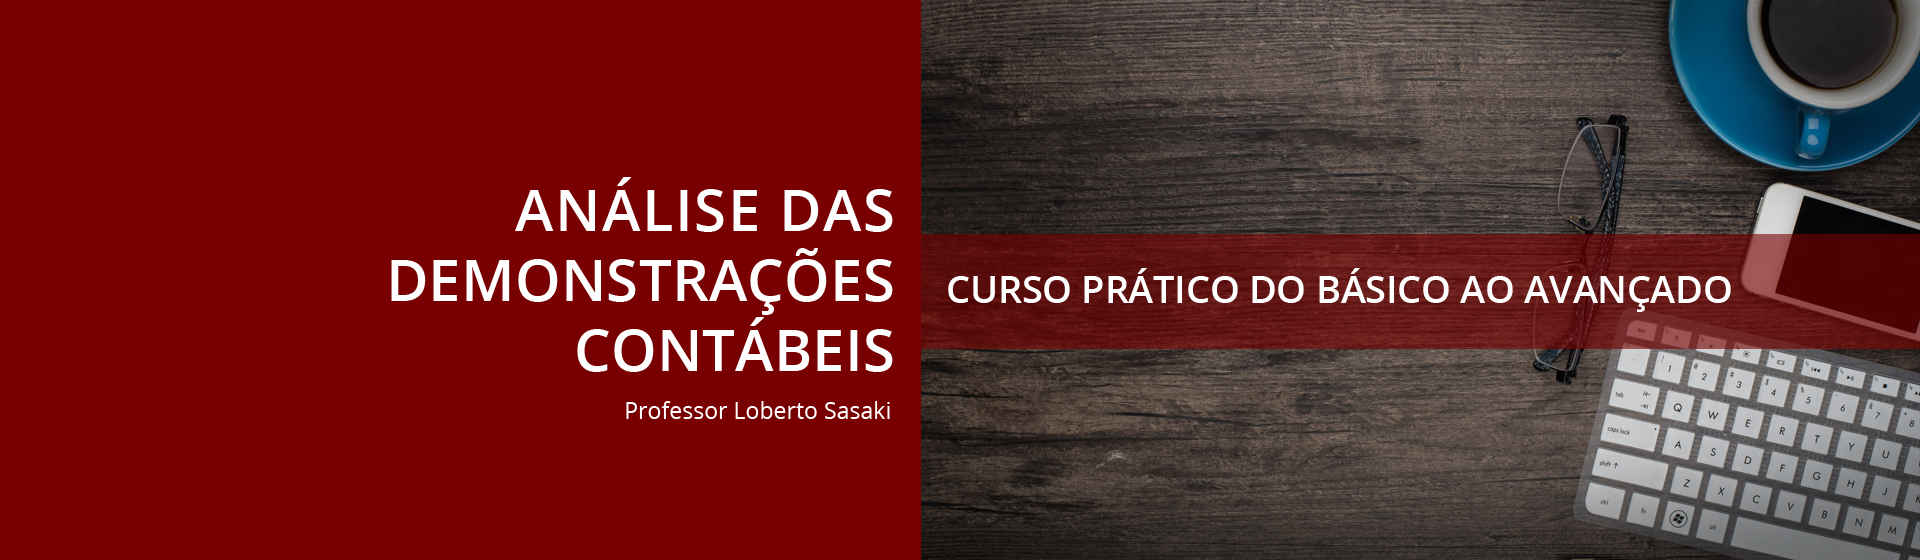 Analise das demonstracoes contabeis loberto sasaki 12